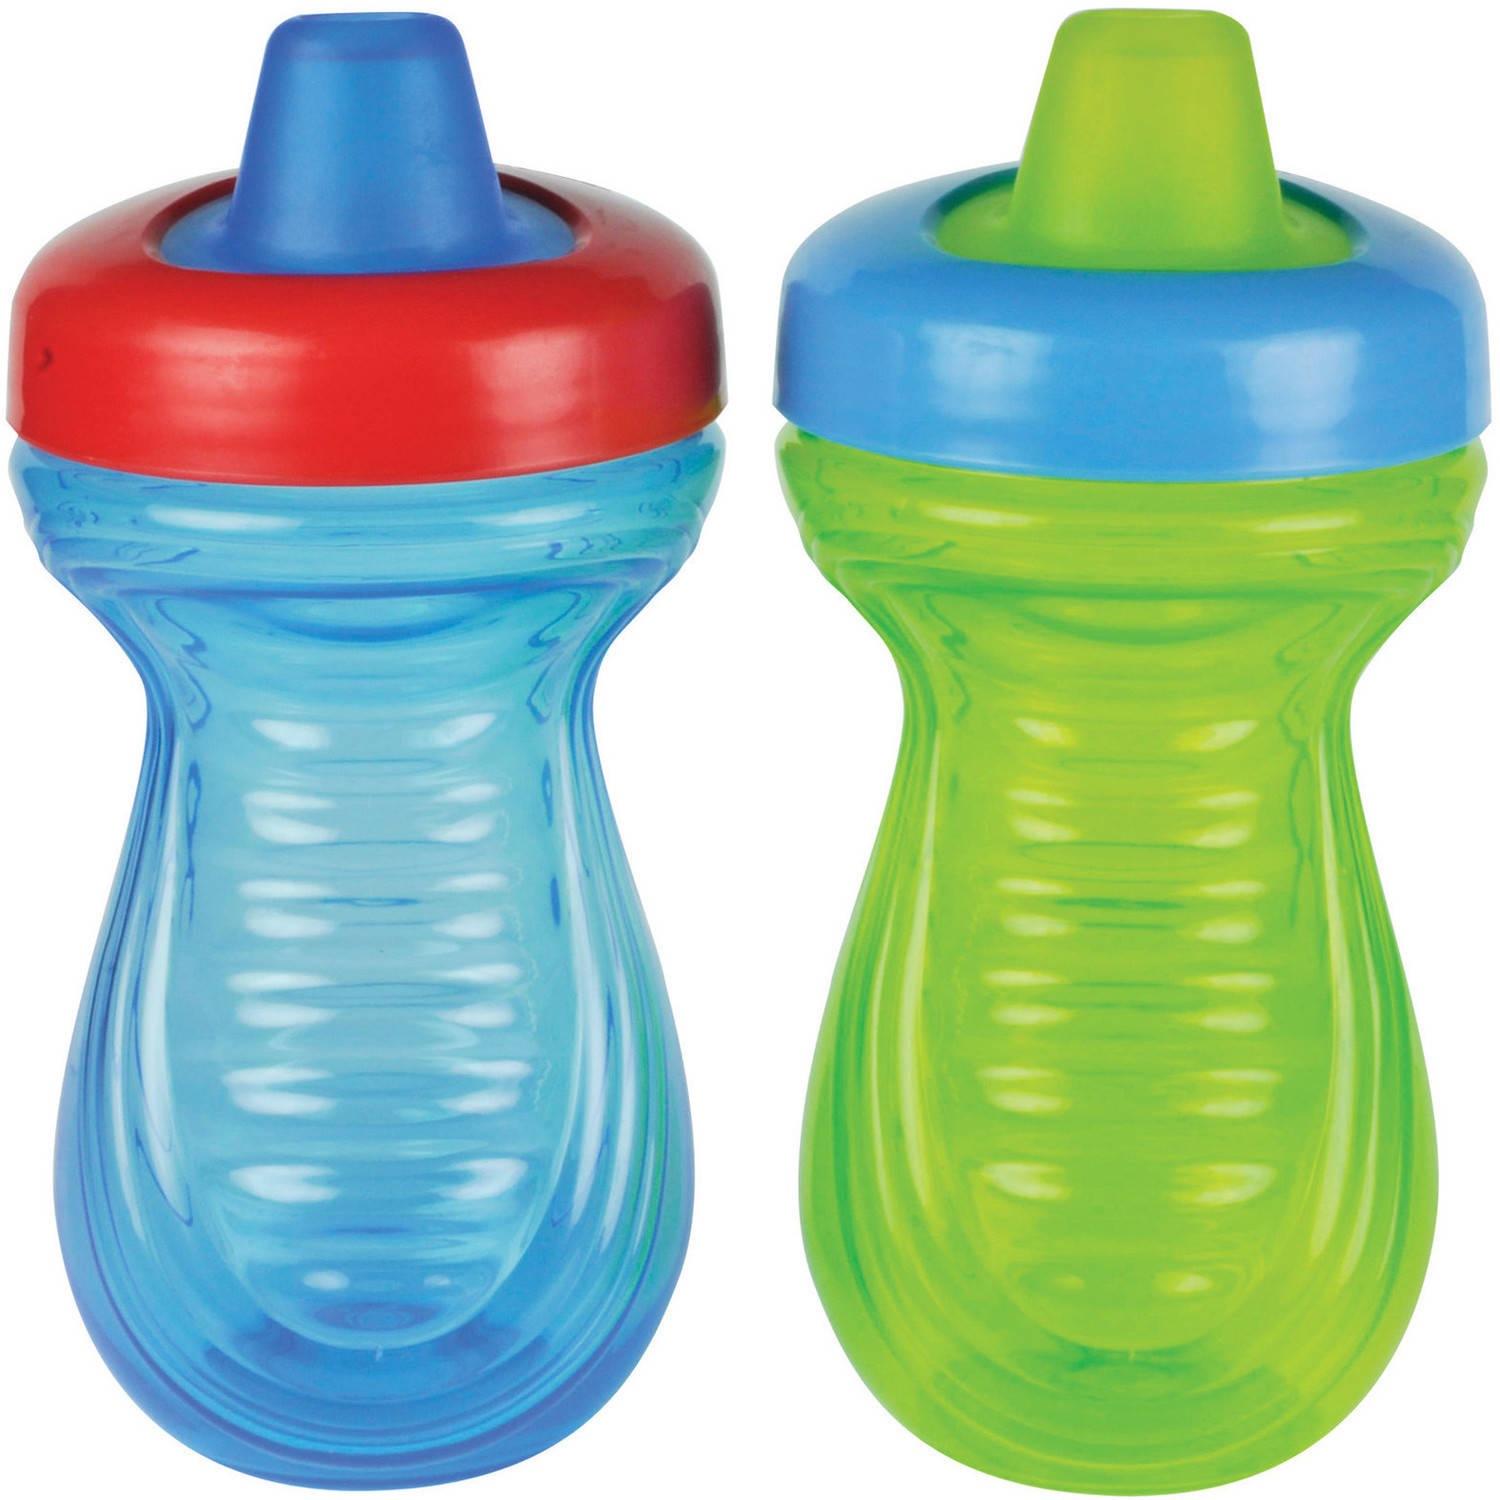 The First Years Spill-Proof Soft Spout Sippy Cup with One Piece Lid, 2pk, Blue/Green, BPA-Free